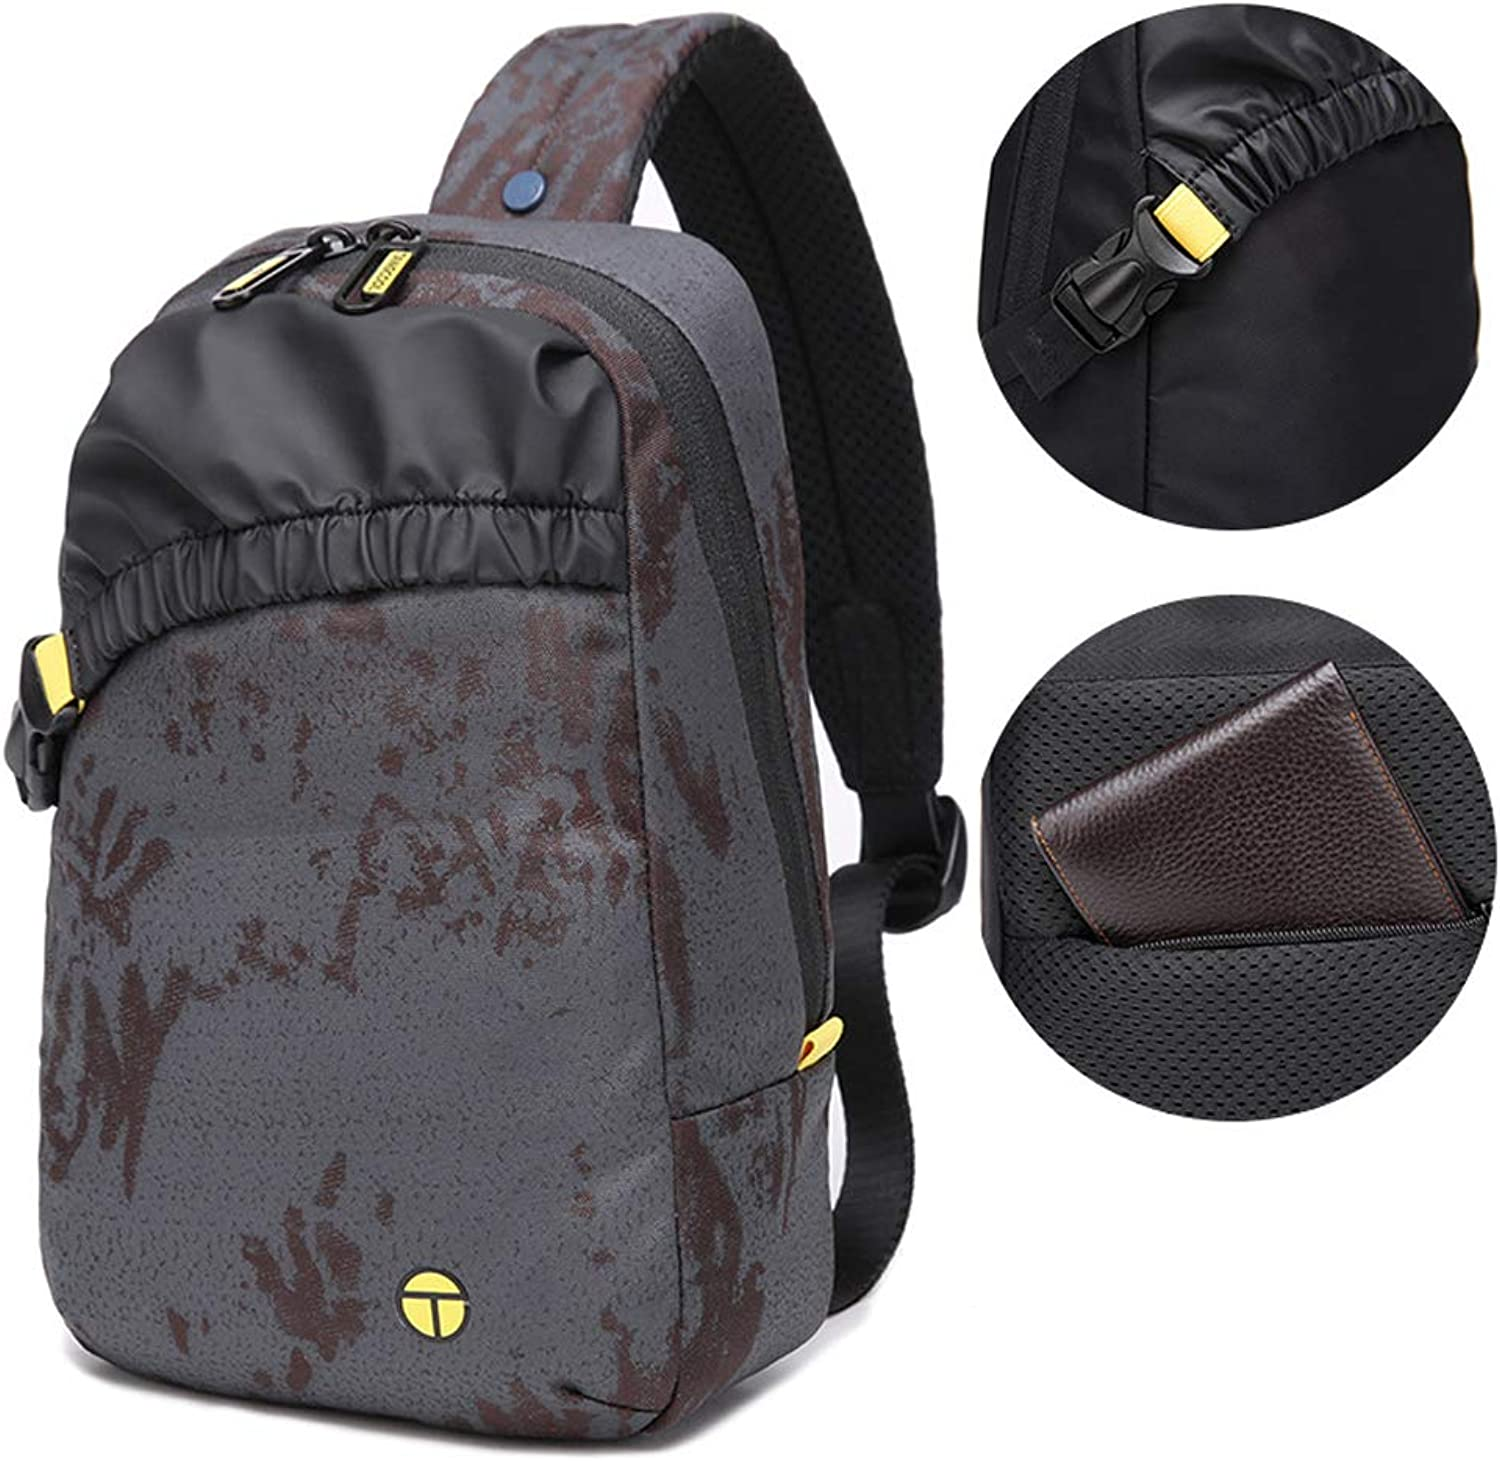 1f1db7f2f Fashion Shoulder Bag Crossbody Bag 25L Oxford Waterproof Chest Bags for  Students (Grey Camouflage) noufbk2466-Sporting goods